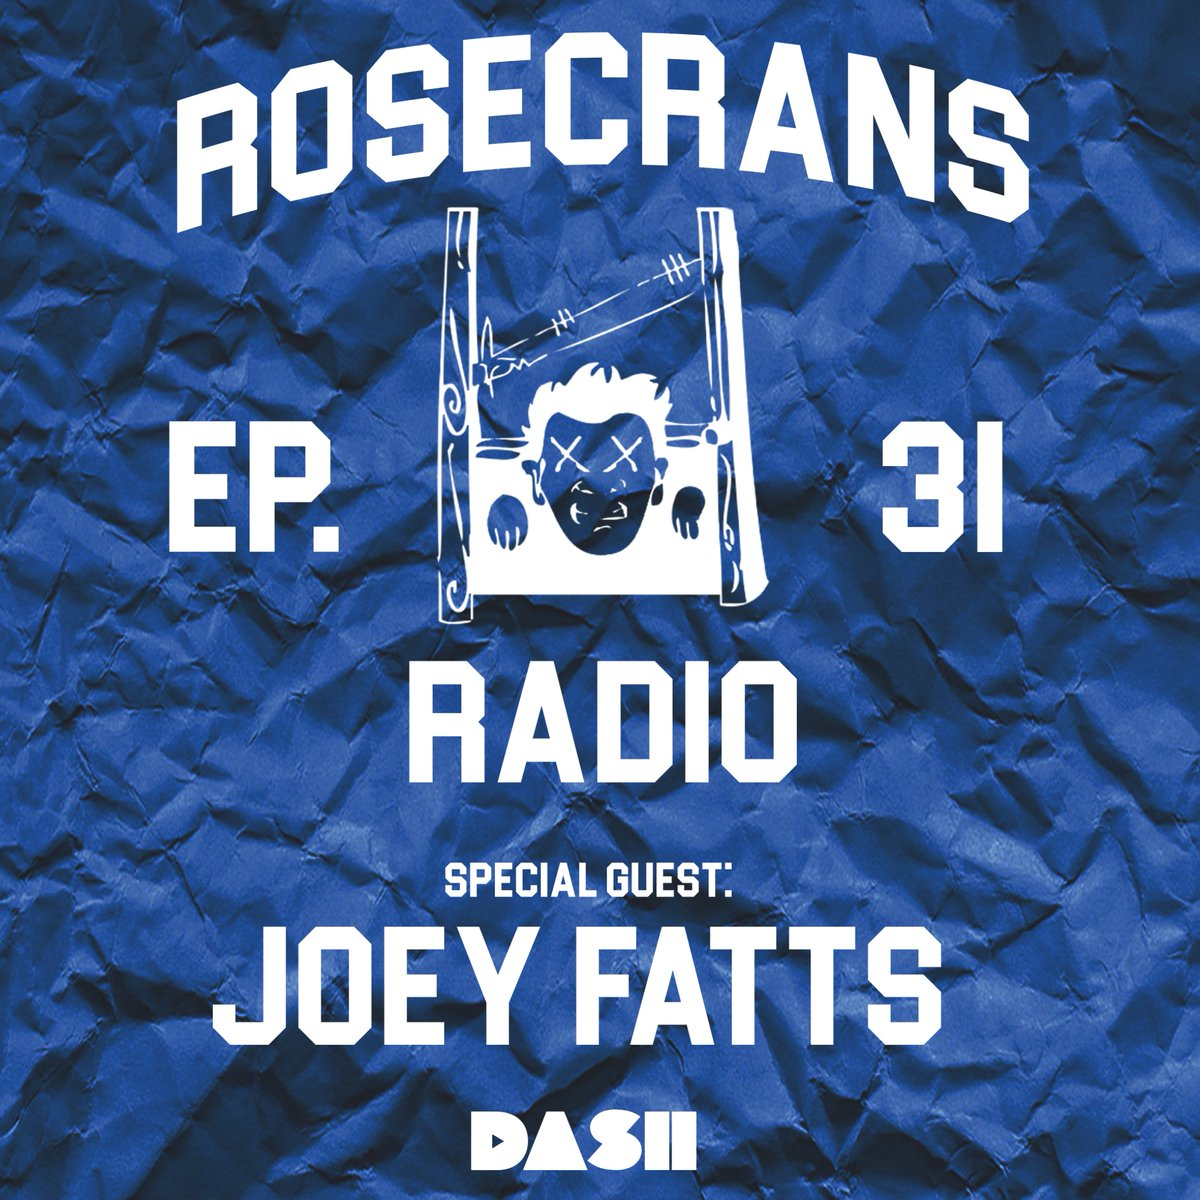 Rosecrans Radio 031 With Cypress Moreno Featuring Joey Fatts